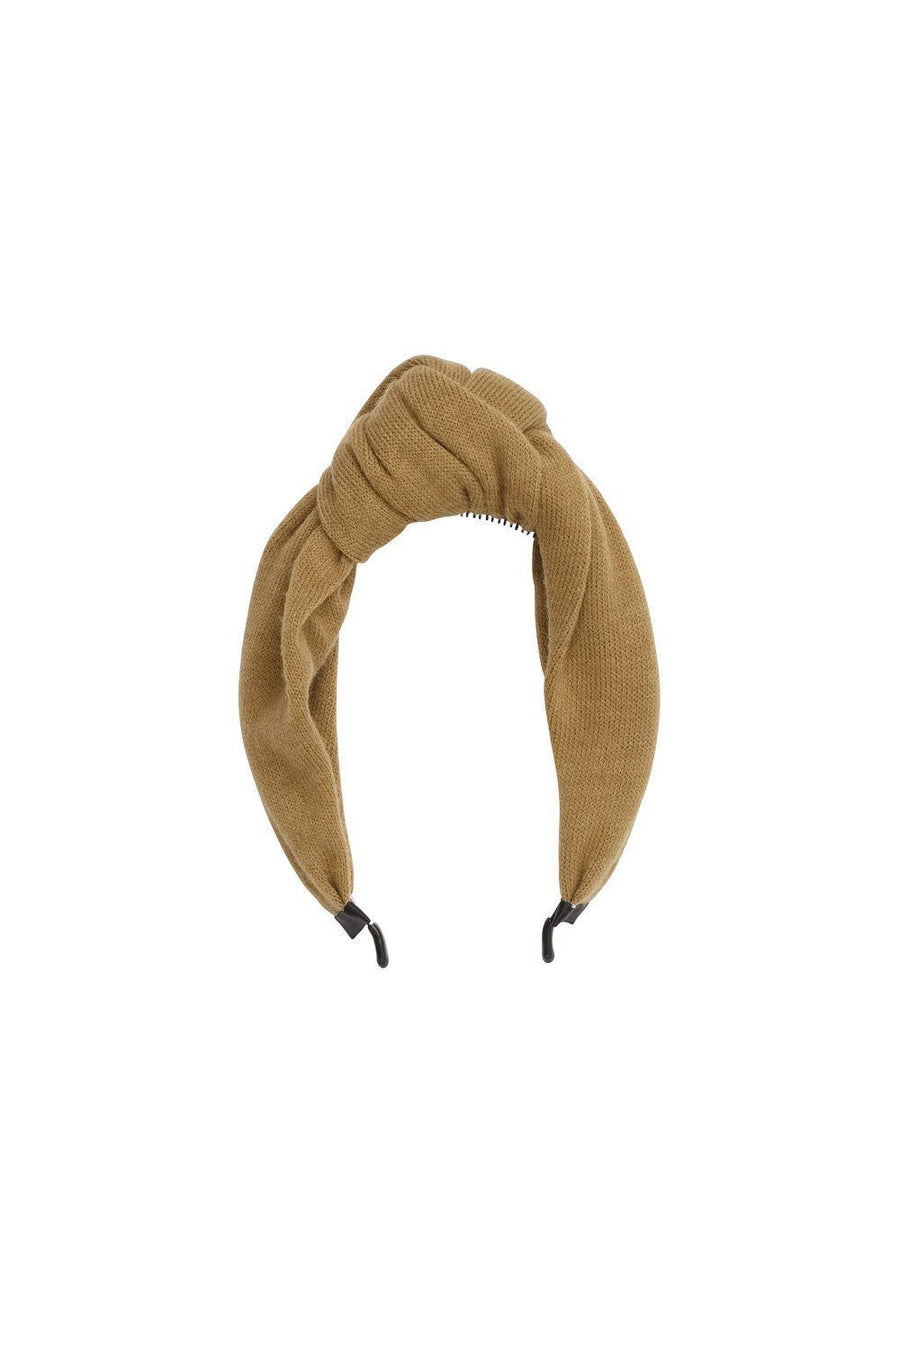 Knot Headband - Gold Olive Wool - PROJECT 6, modest fashion